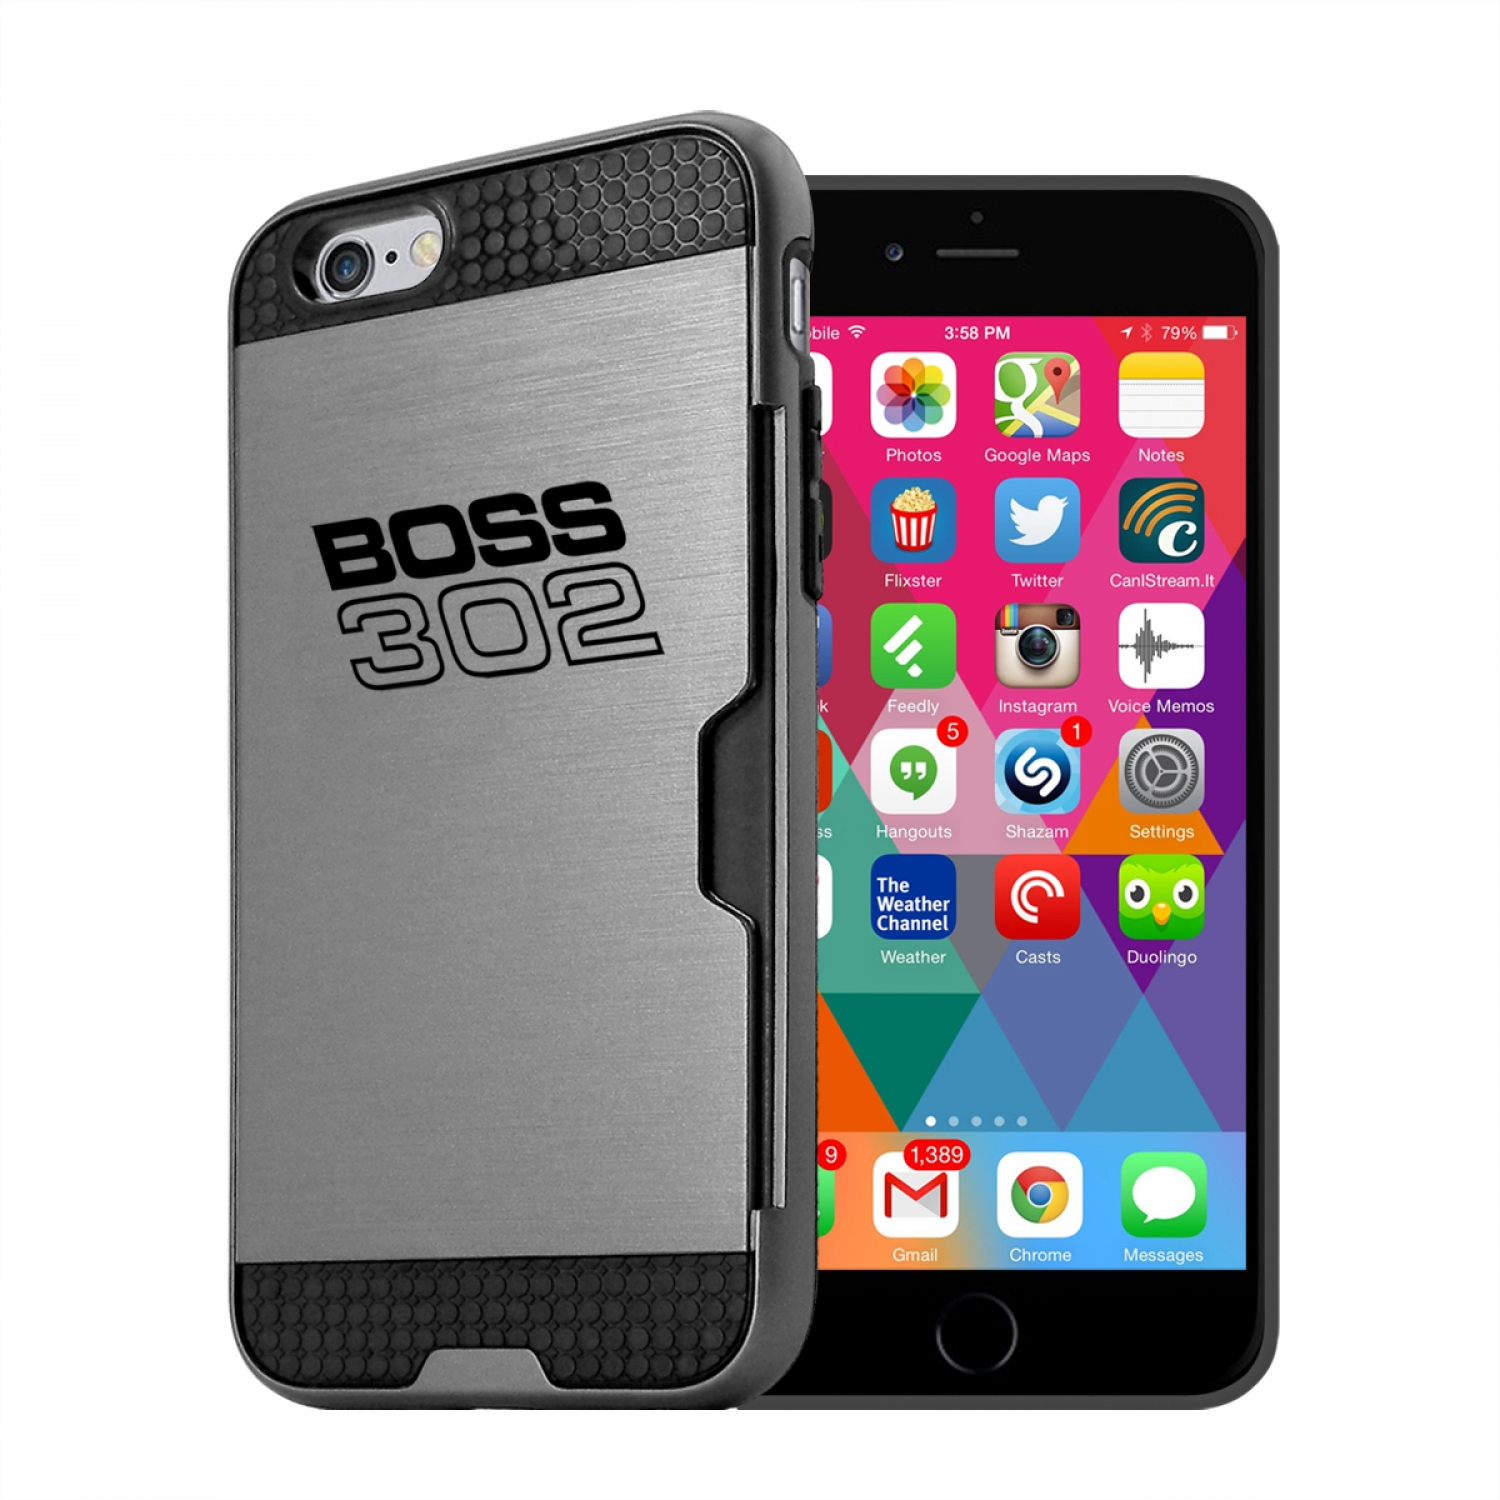 Ford Mustang Boss 302 iPhone 6 6s Ultra Thin TPU Silver Phone Case with Credit Card Slot Wallet